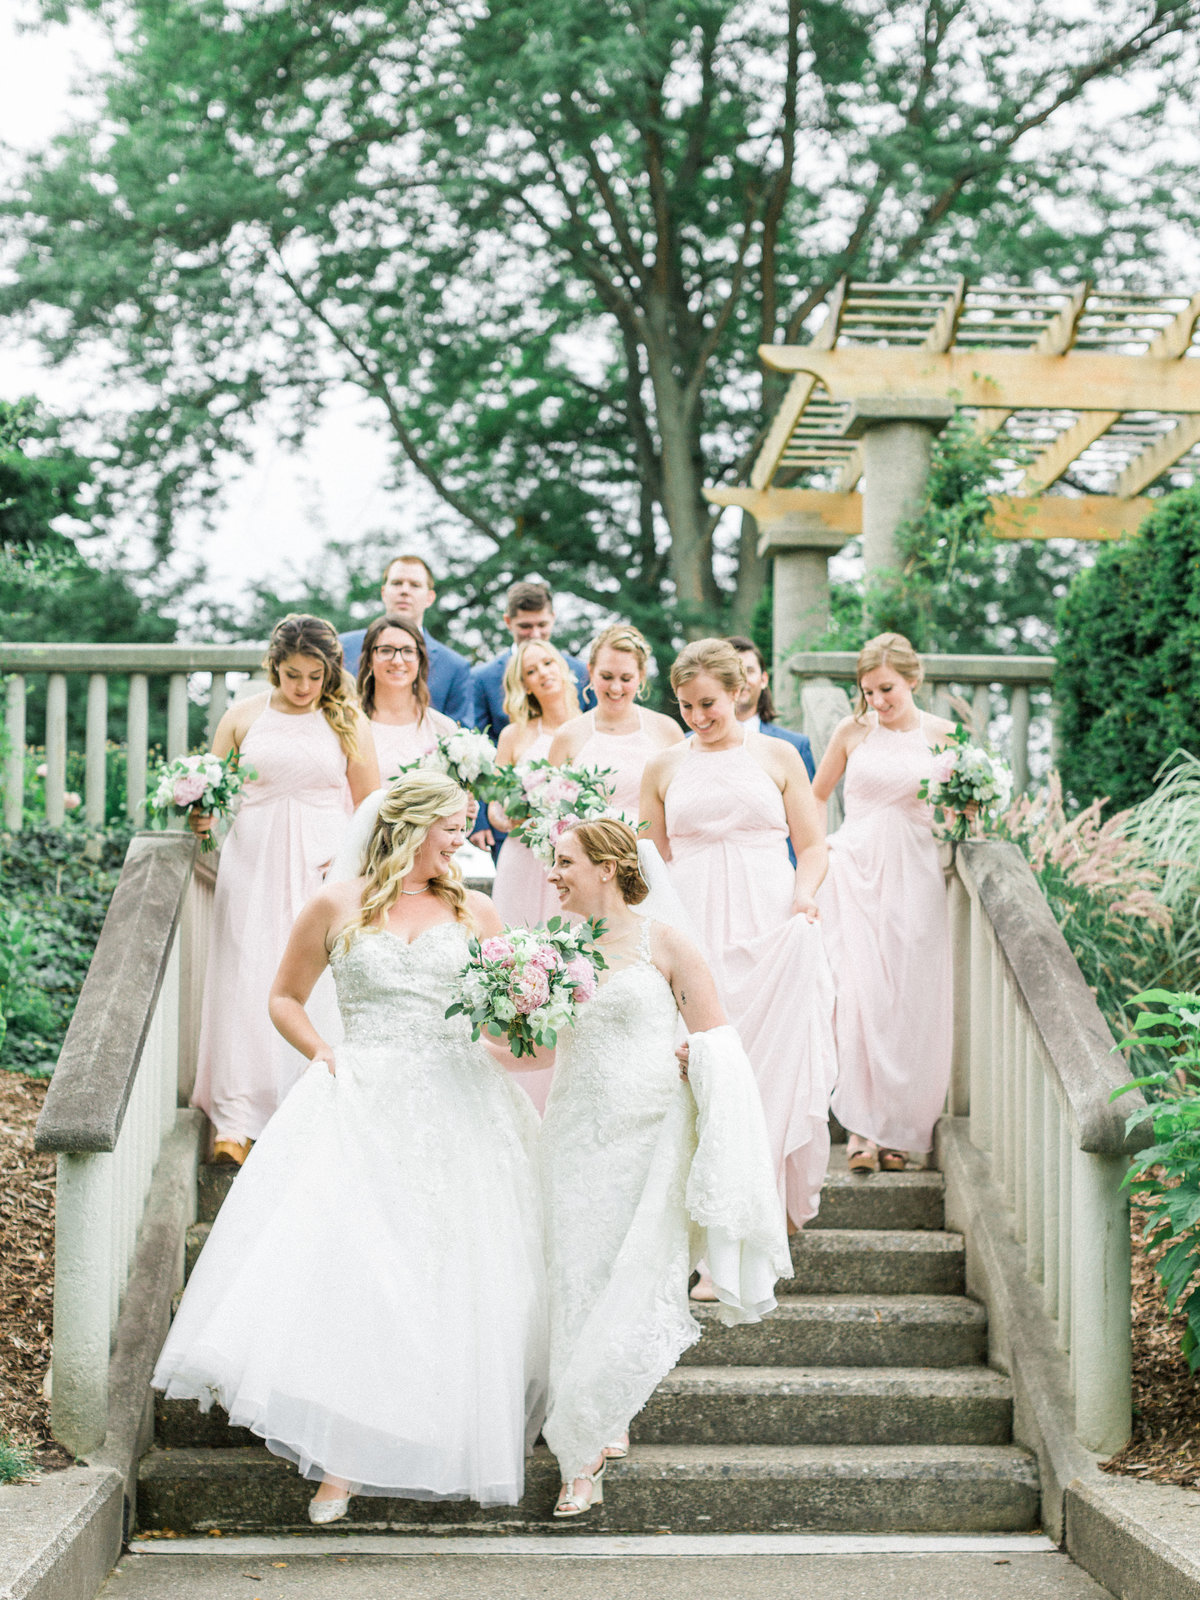 Brides and Bridal Party